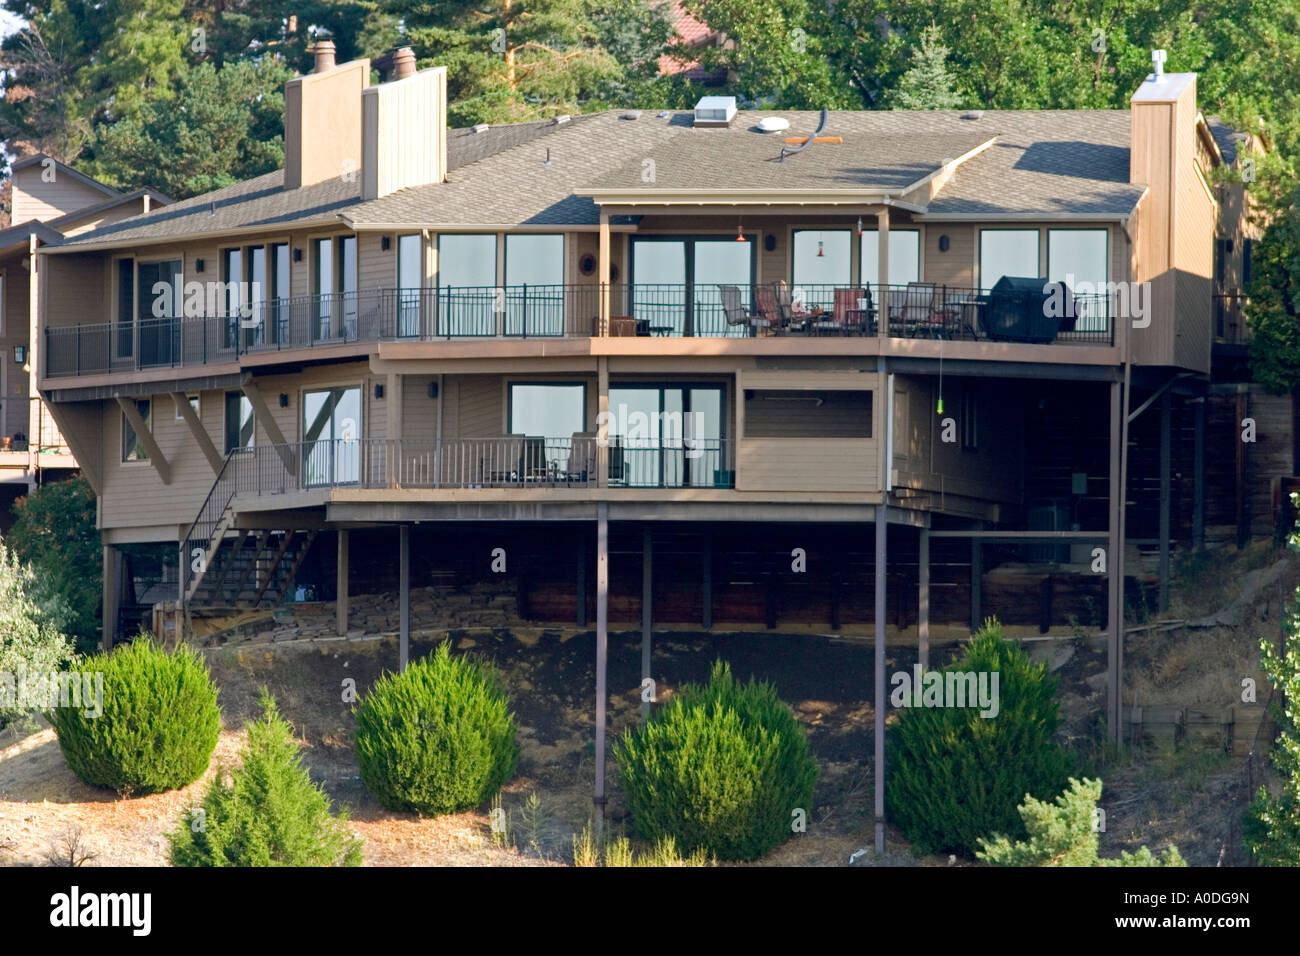 Home Built On A Hillside Using Stilts For Foundation Support In Boise Stock Photo Alamy